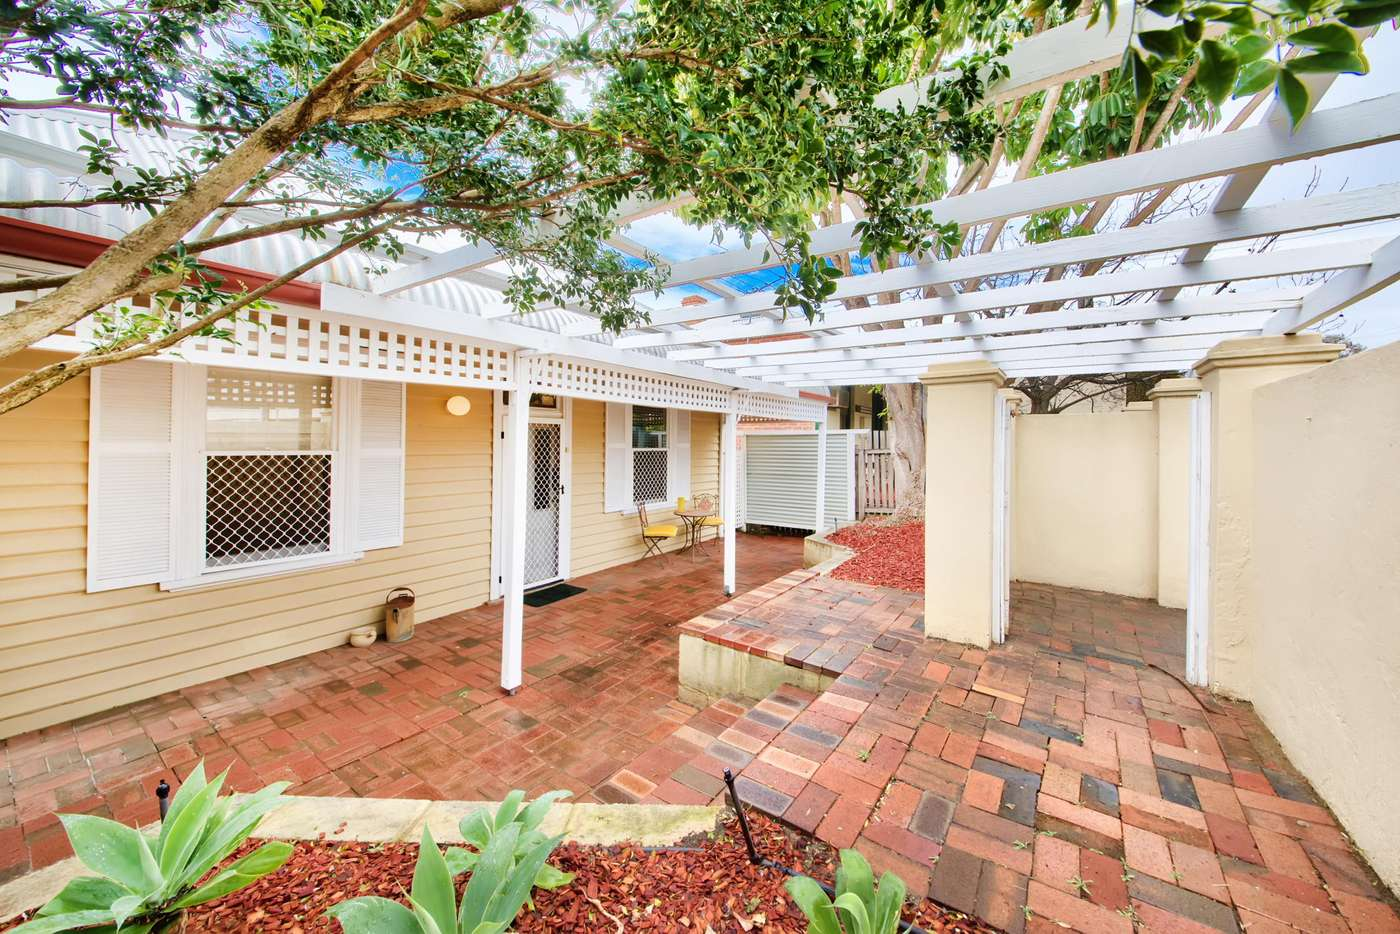 Main view of Homely house listing, 138 Loftus Street, North Perth WA 6006